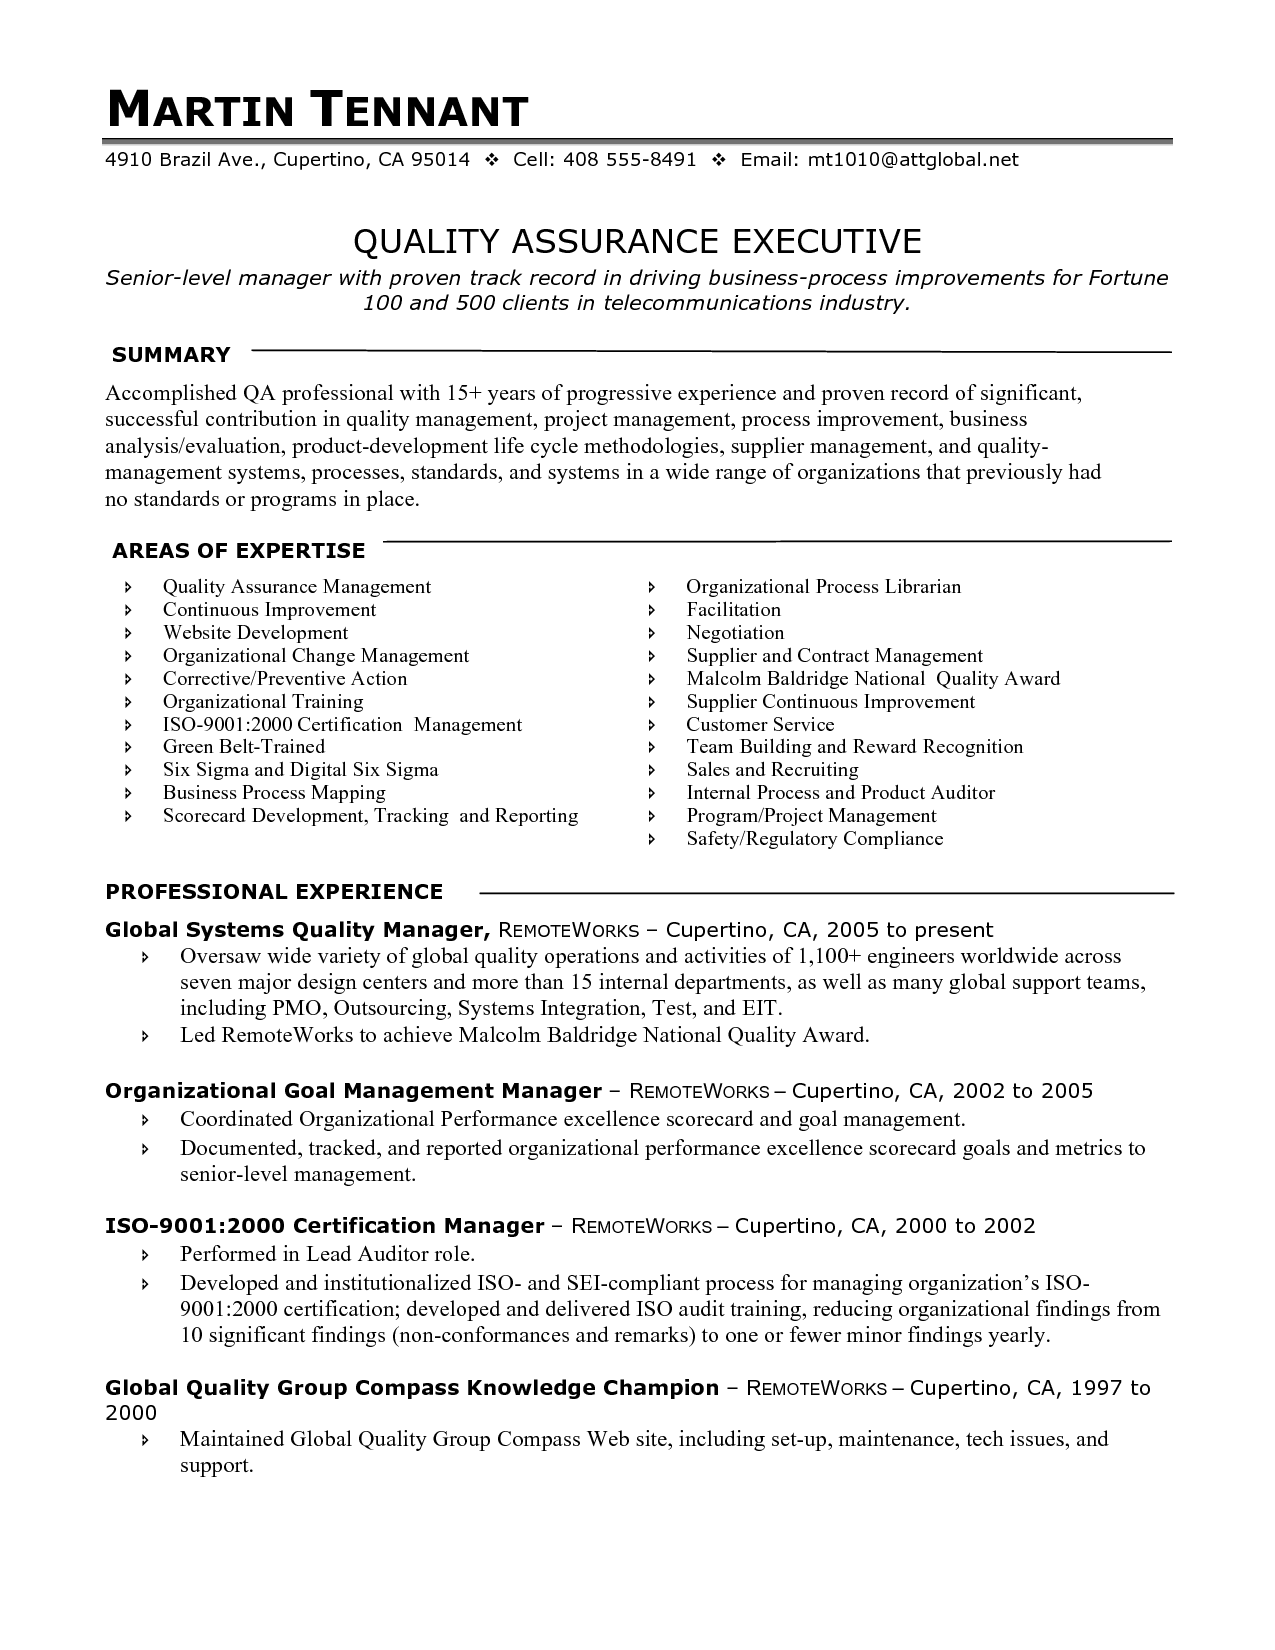 Resume Templates Quality Assurance Manager ResumeTemplates